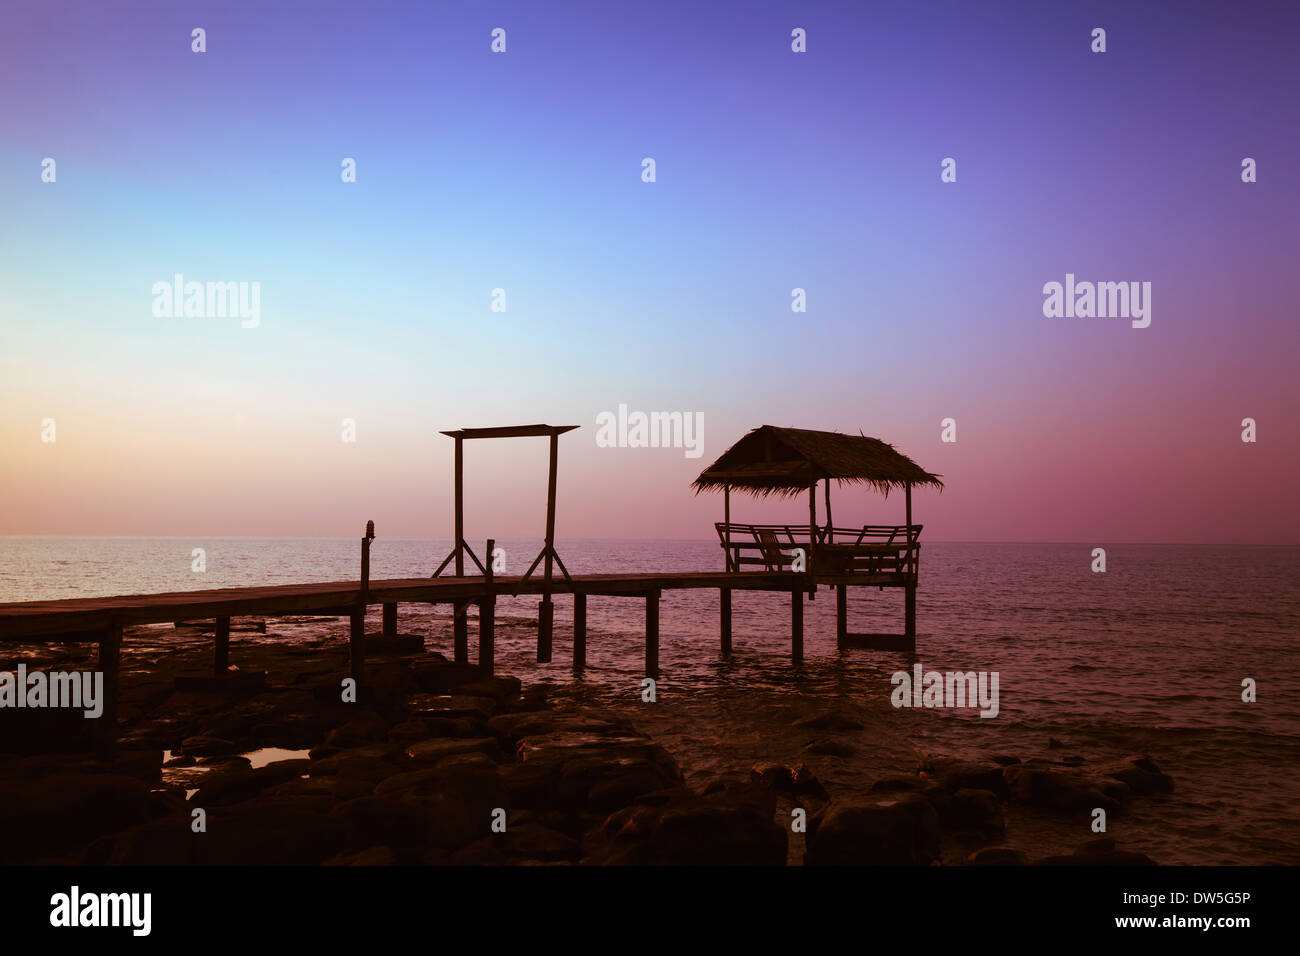 sunset on the beach - Stock Image